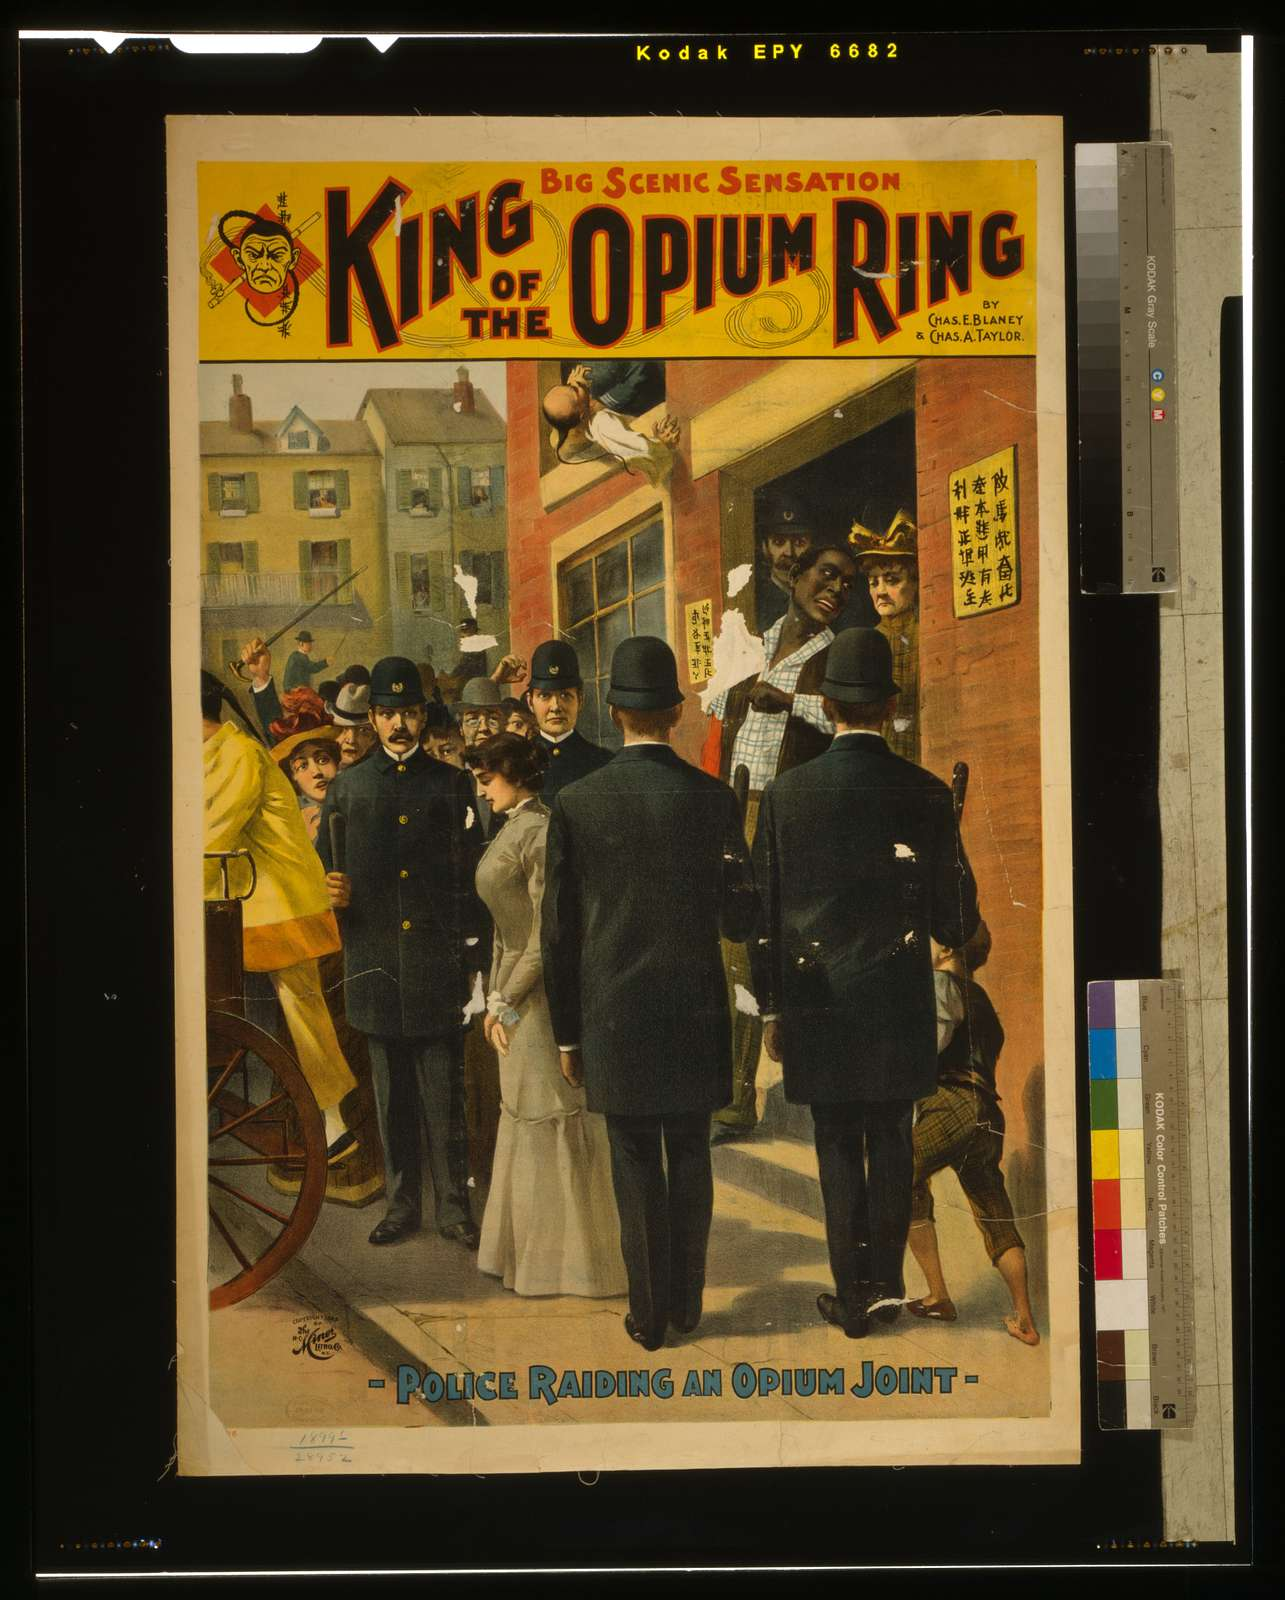 King of the opium ring big scenic sensation : by Chas. E. Blaney & Chas. A. Taylor.